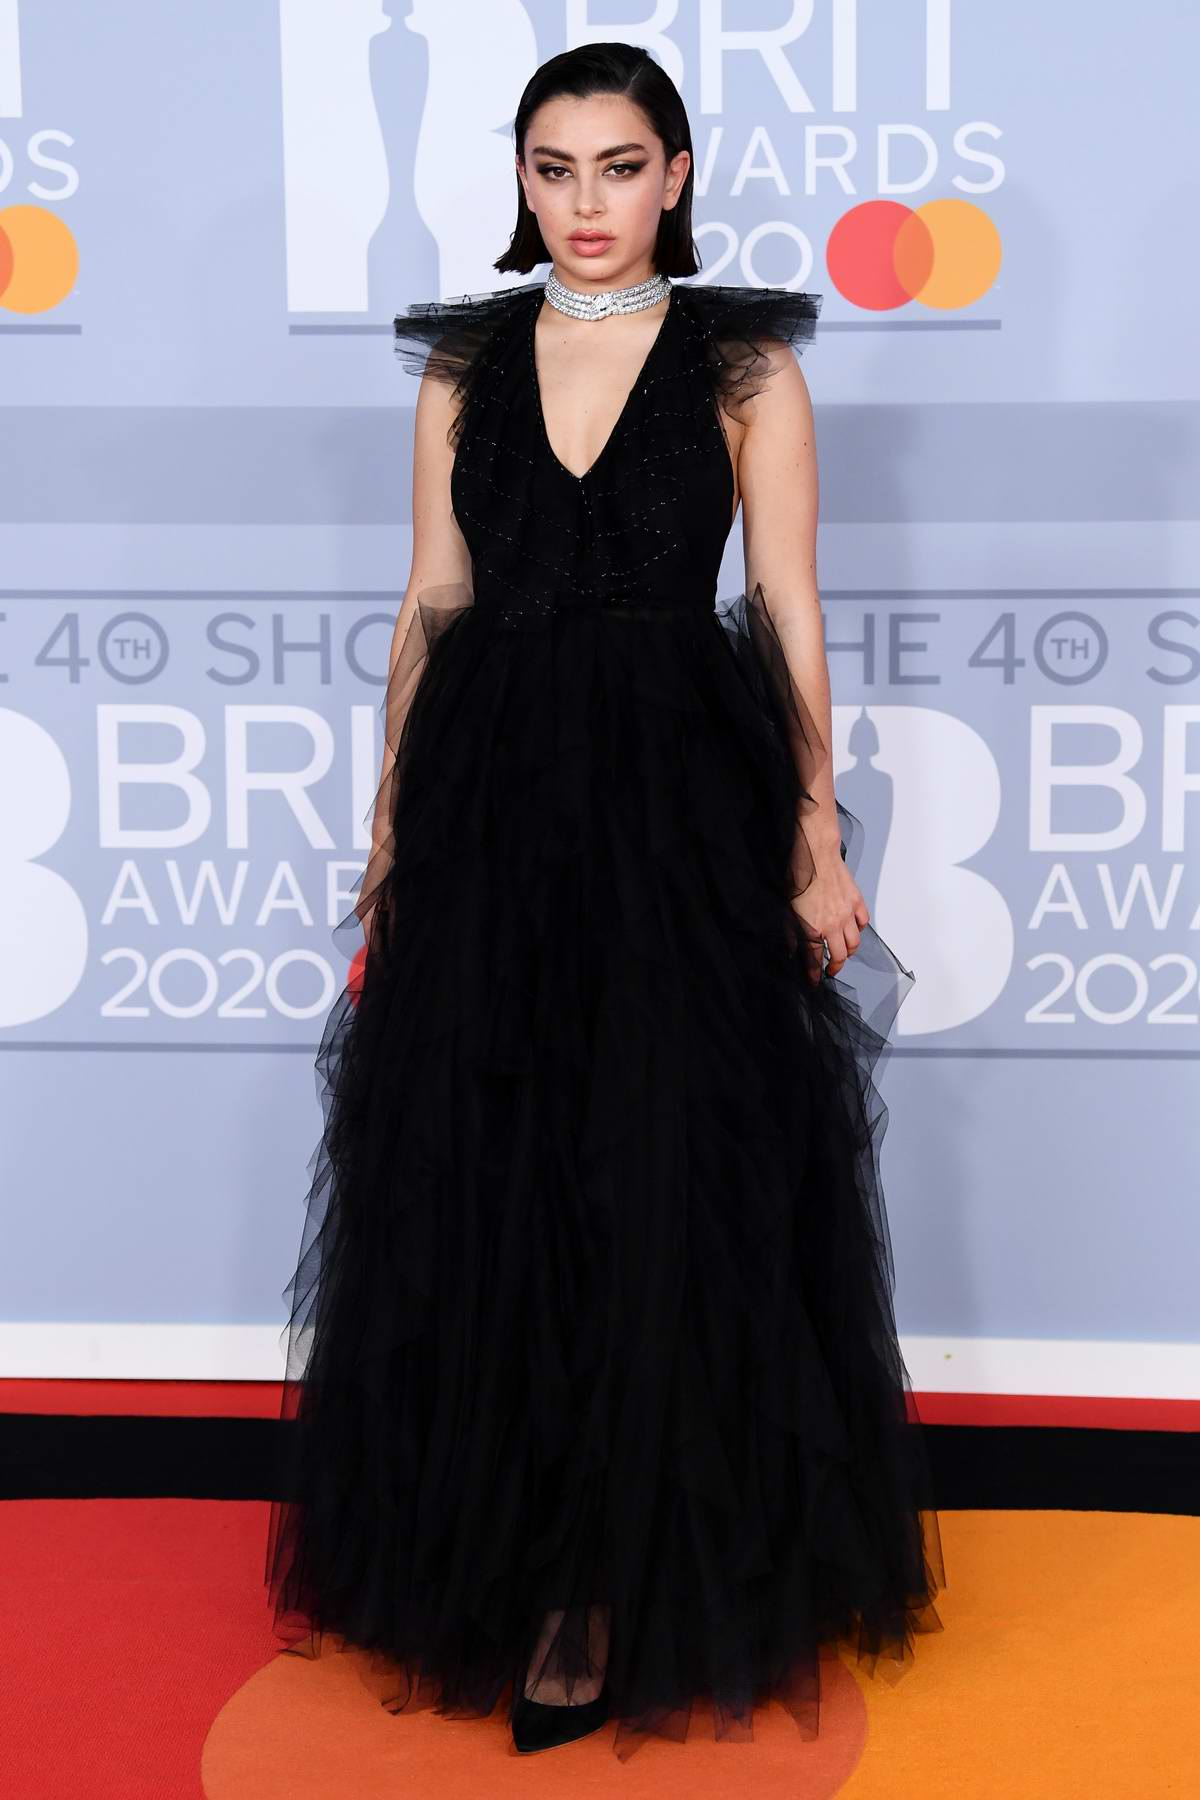 Charli XCX attends the BRIT Awards 2020 at The O2 Arena in London, UK